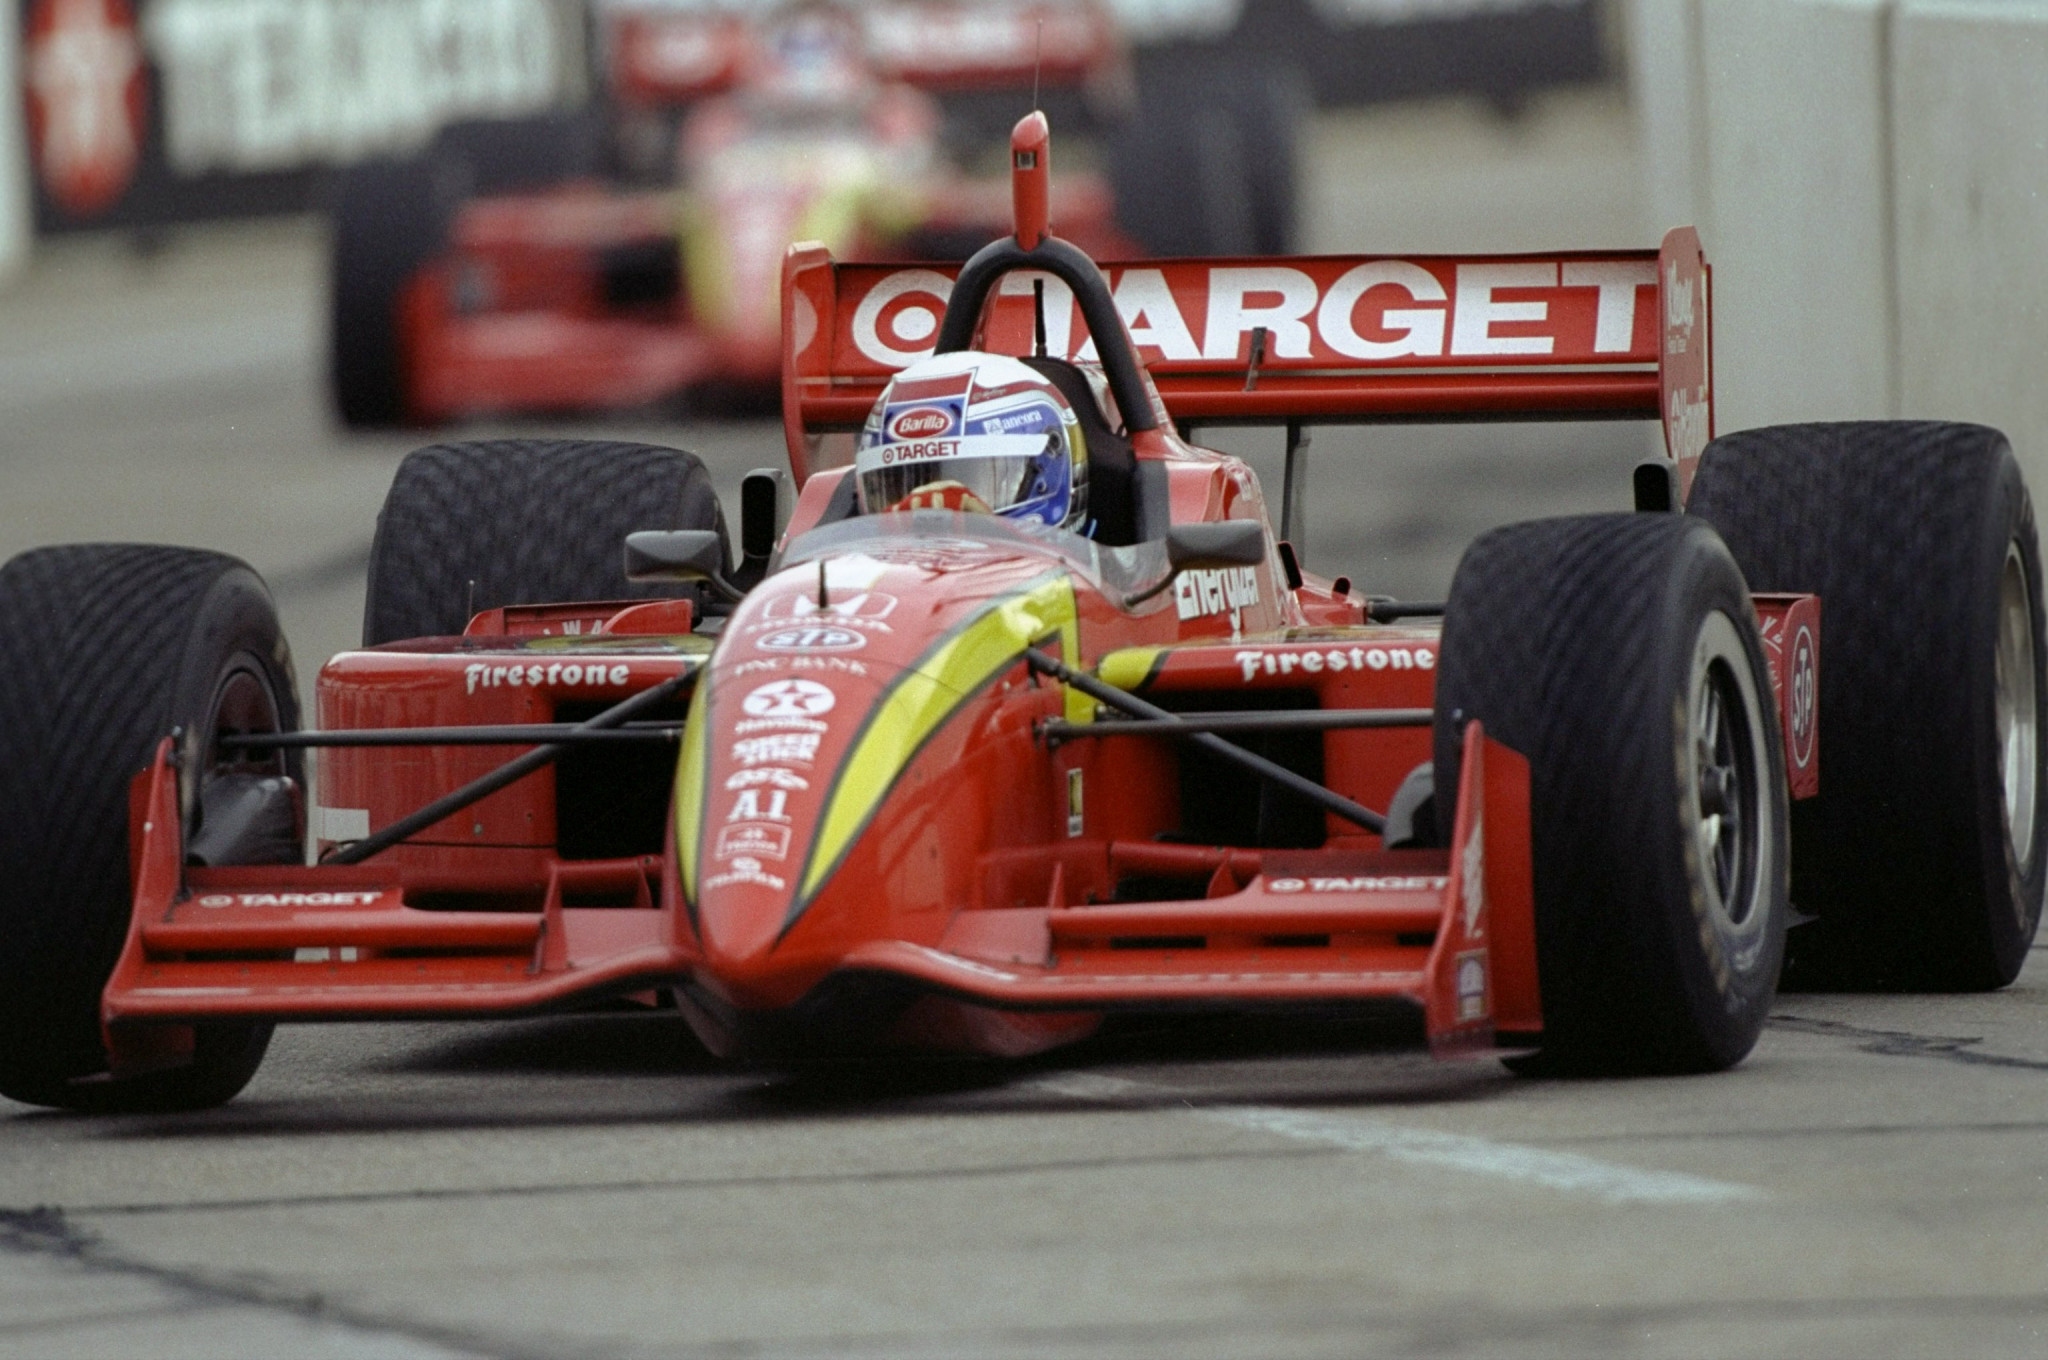 Alex Zanardi was a two-time CART champion in the 1990s ©Getty Images